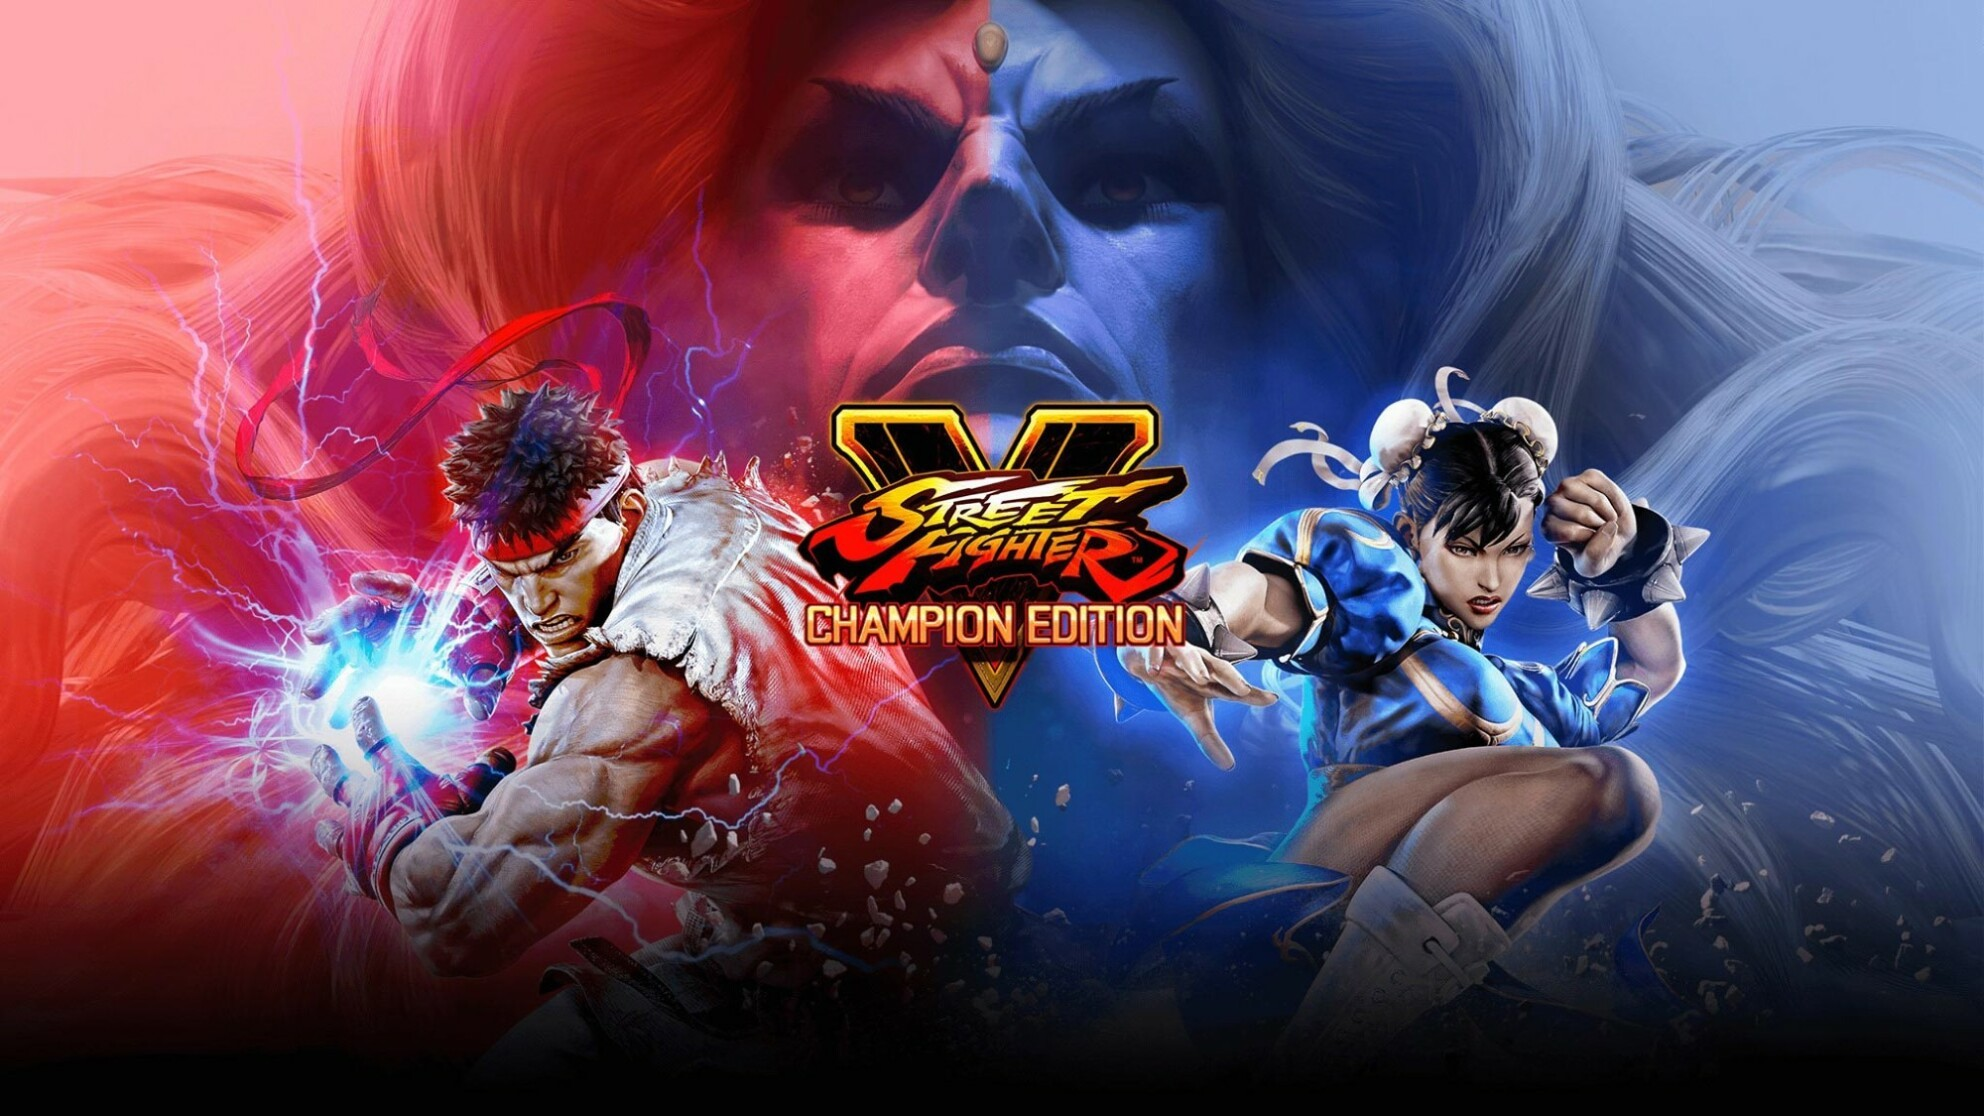 The unlisted Street Fighter V Season 5 patch notes